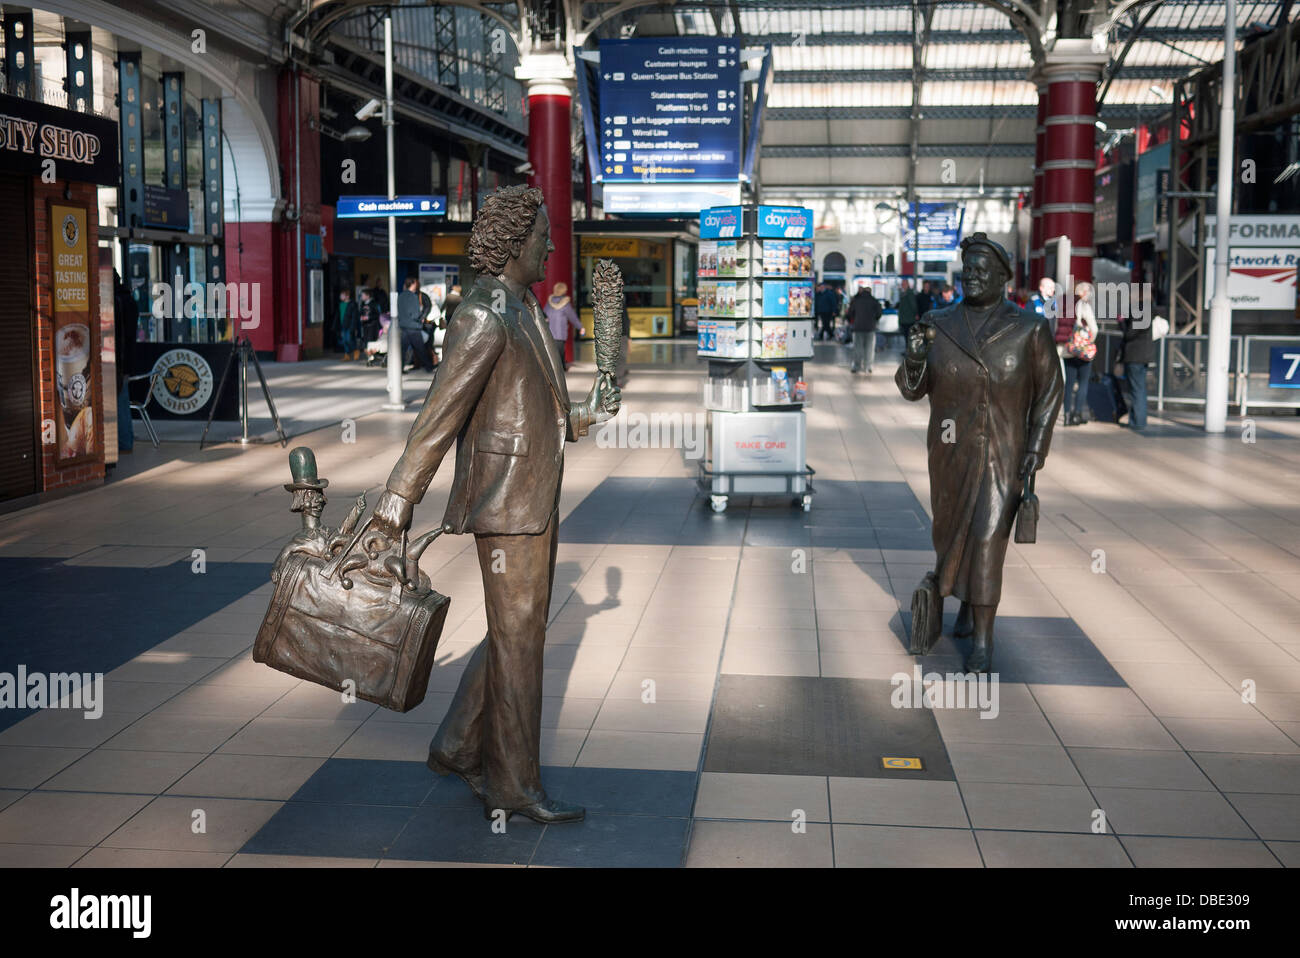 Sculptures by Sculptor Tom Murphy at Liverpool's Lime Street Railway Station, of entertainer Ken Dodd and Bessie - Stock Image